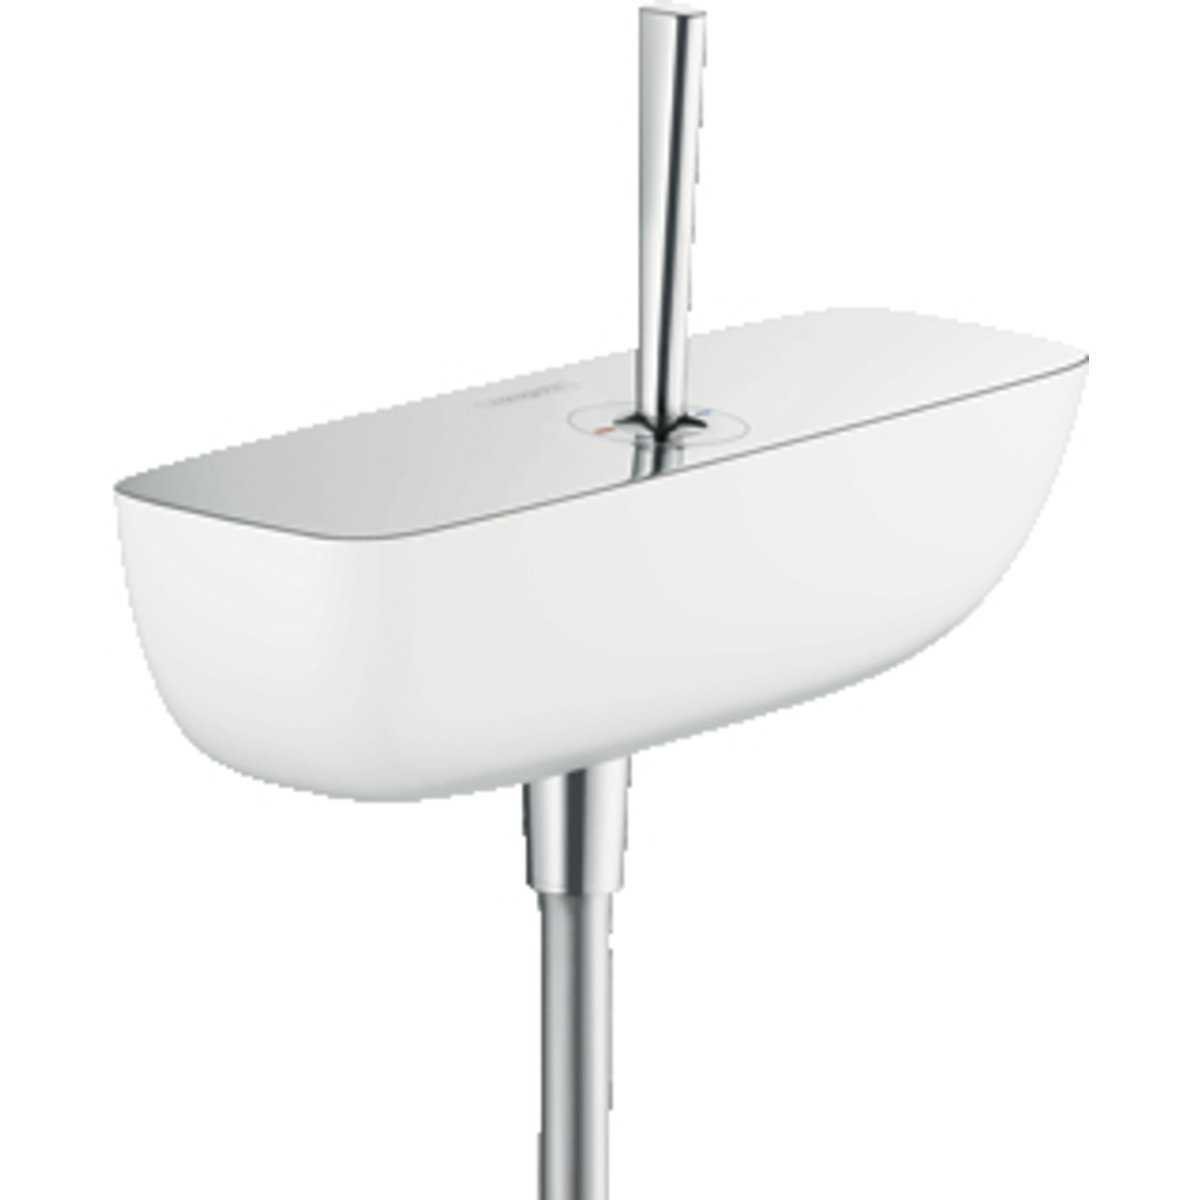 hansgrohe puravida m langeur de douche avec connexions chrome 15672000. Black Bedroom Furniture Sets. Home Design Ideas